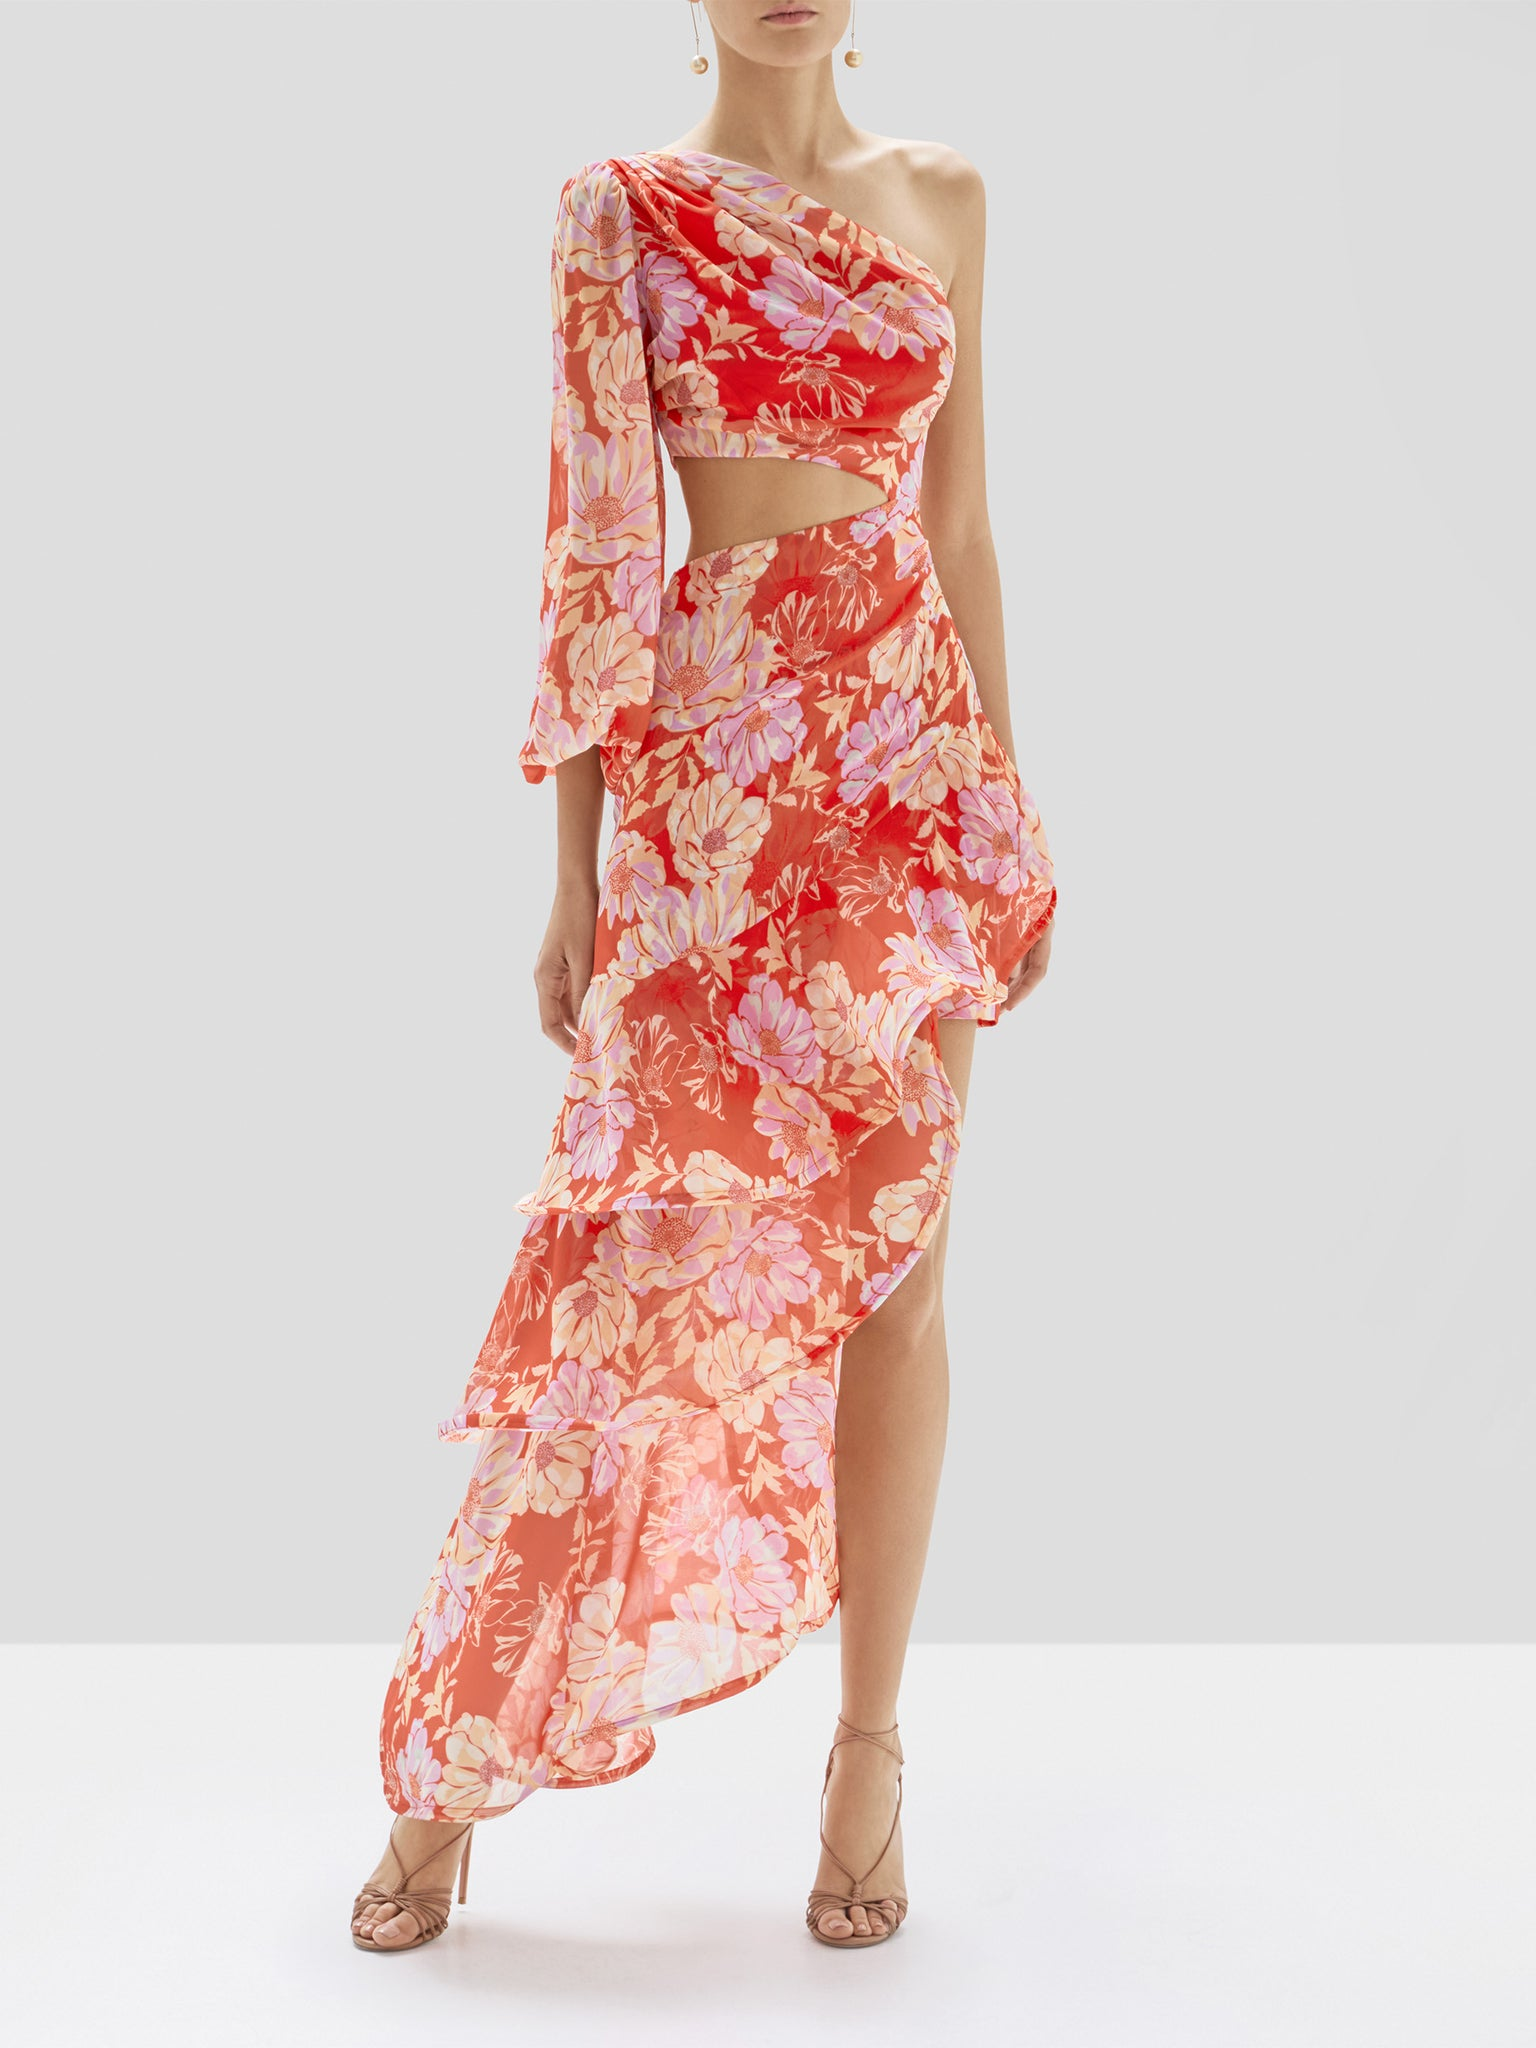 Alexis Sabetta Dress in Red Floral from Pre Spring 2020 Collection